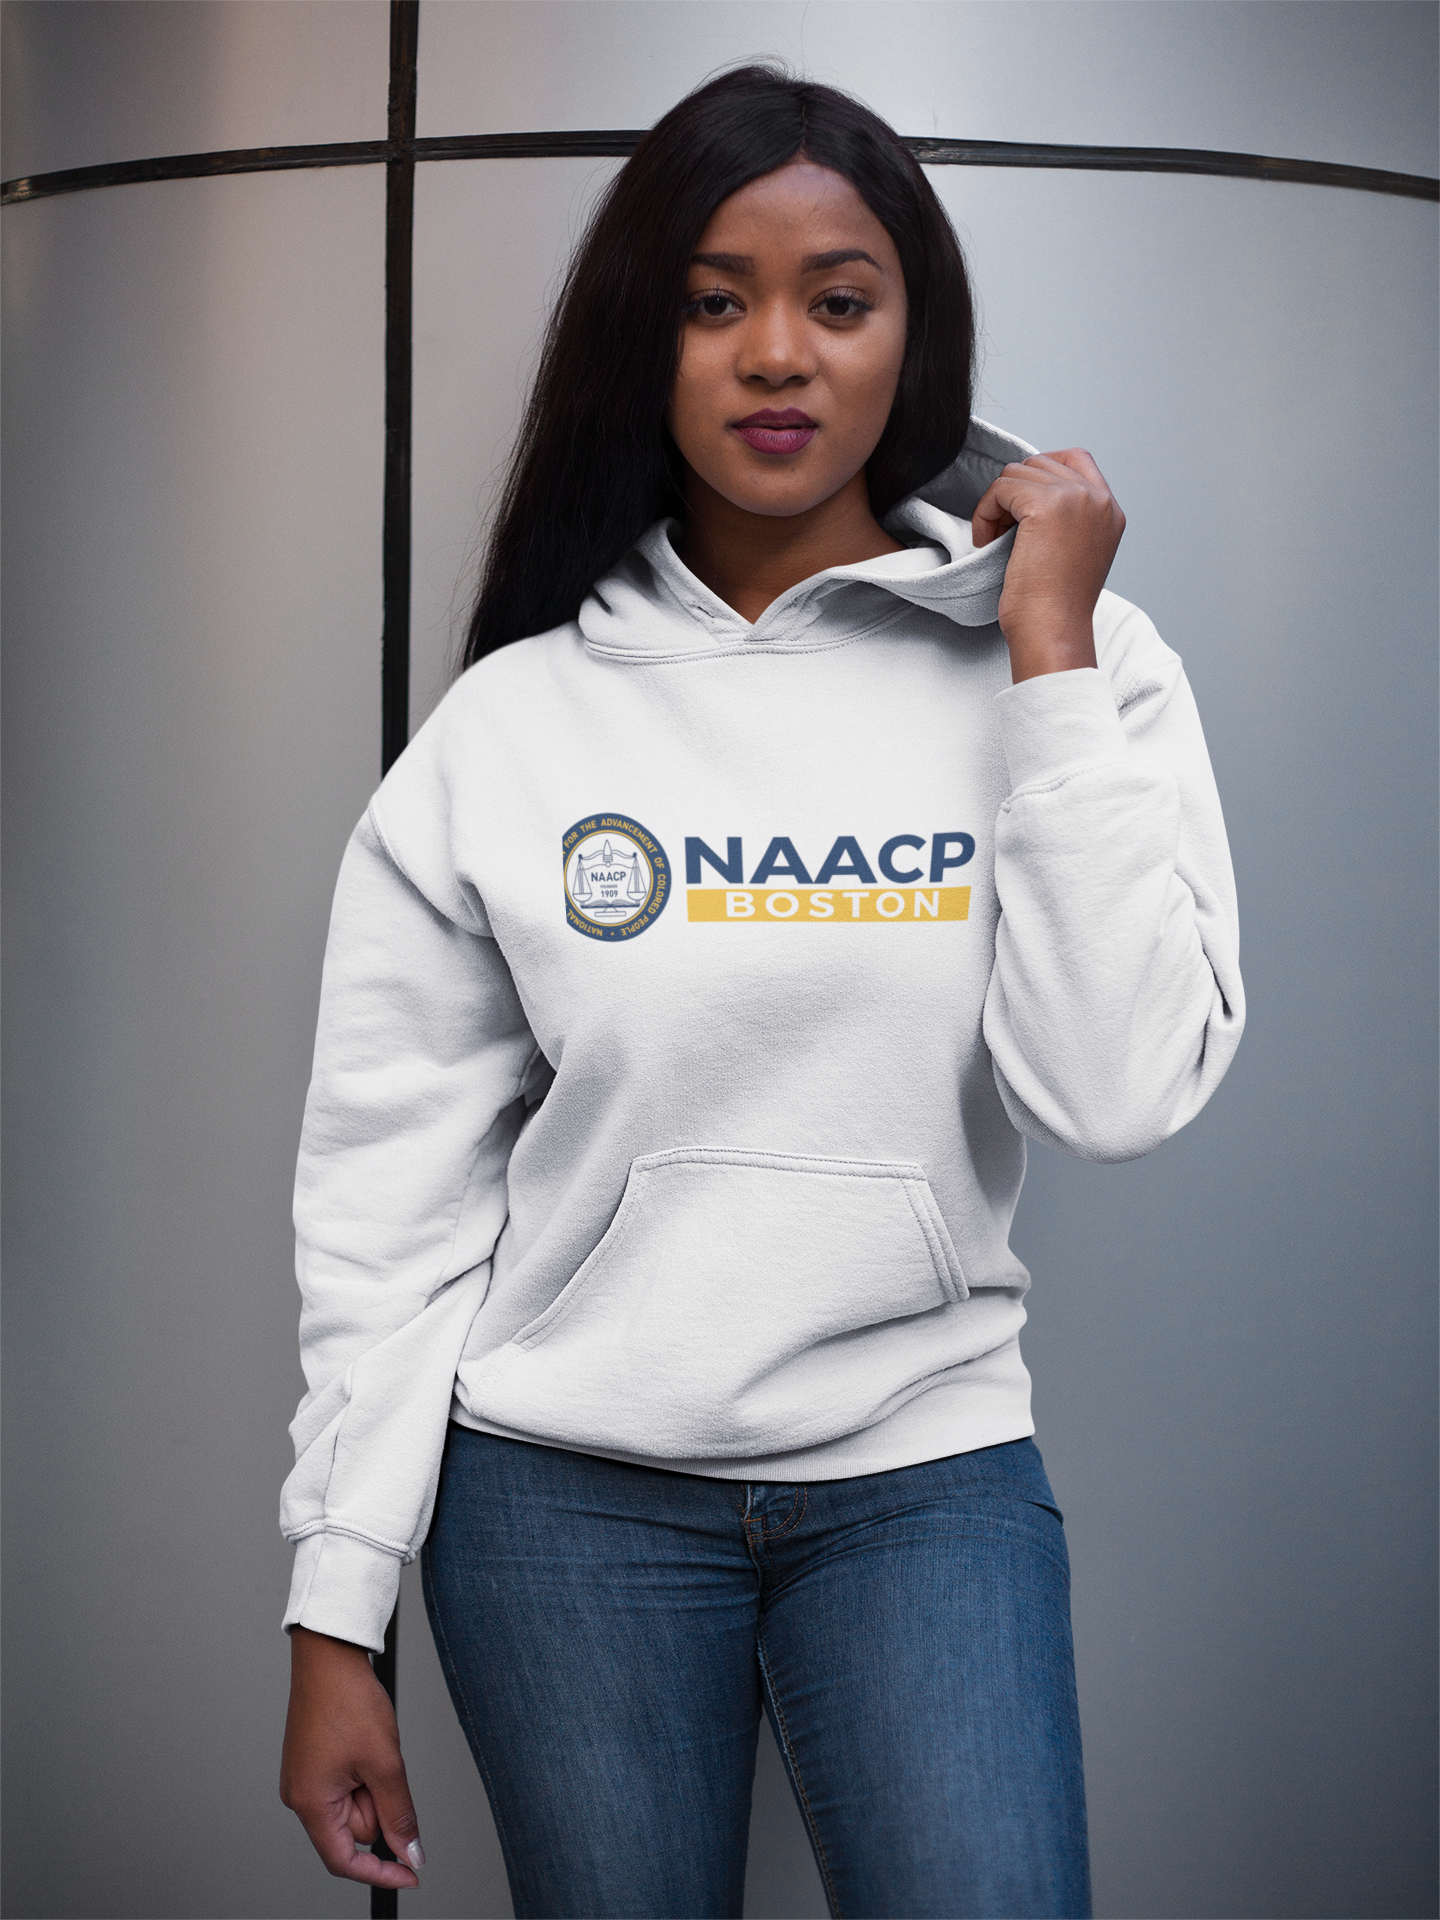 Left-Eye-Creations-NAACP-Boston-girl-holding-her-Printed-hoodie.png